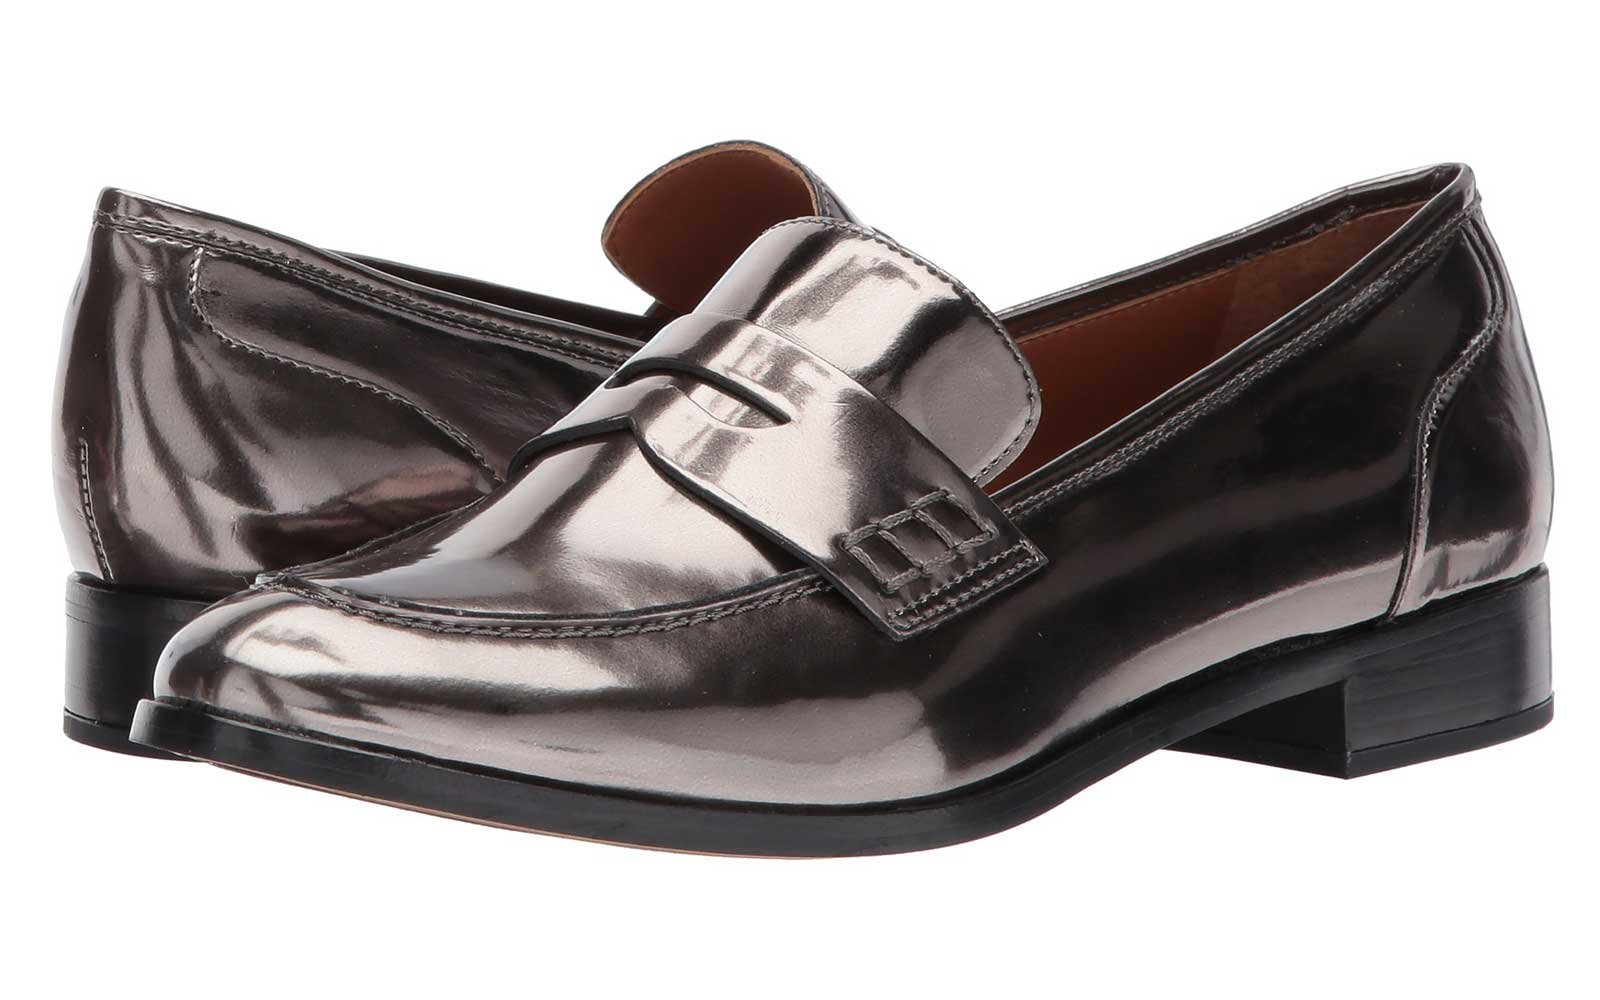 Metallic Loafers for Fall